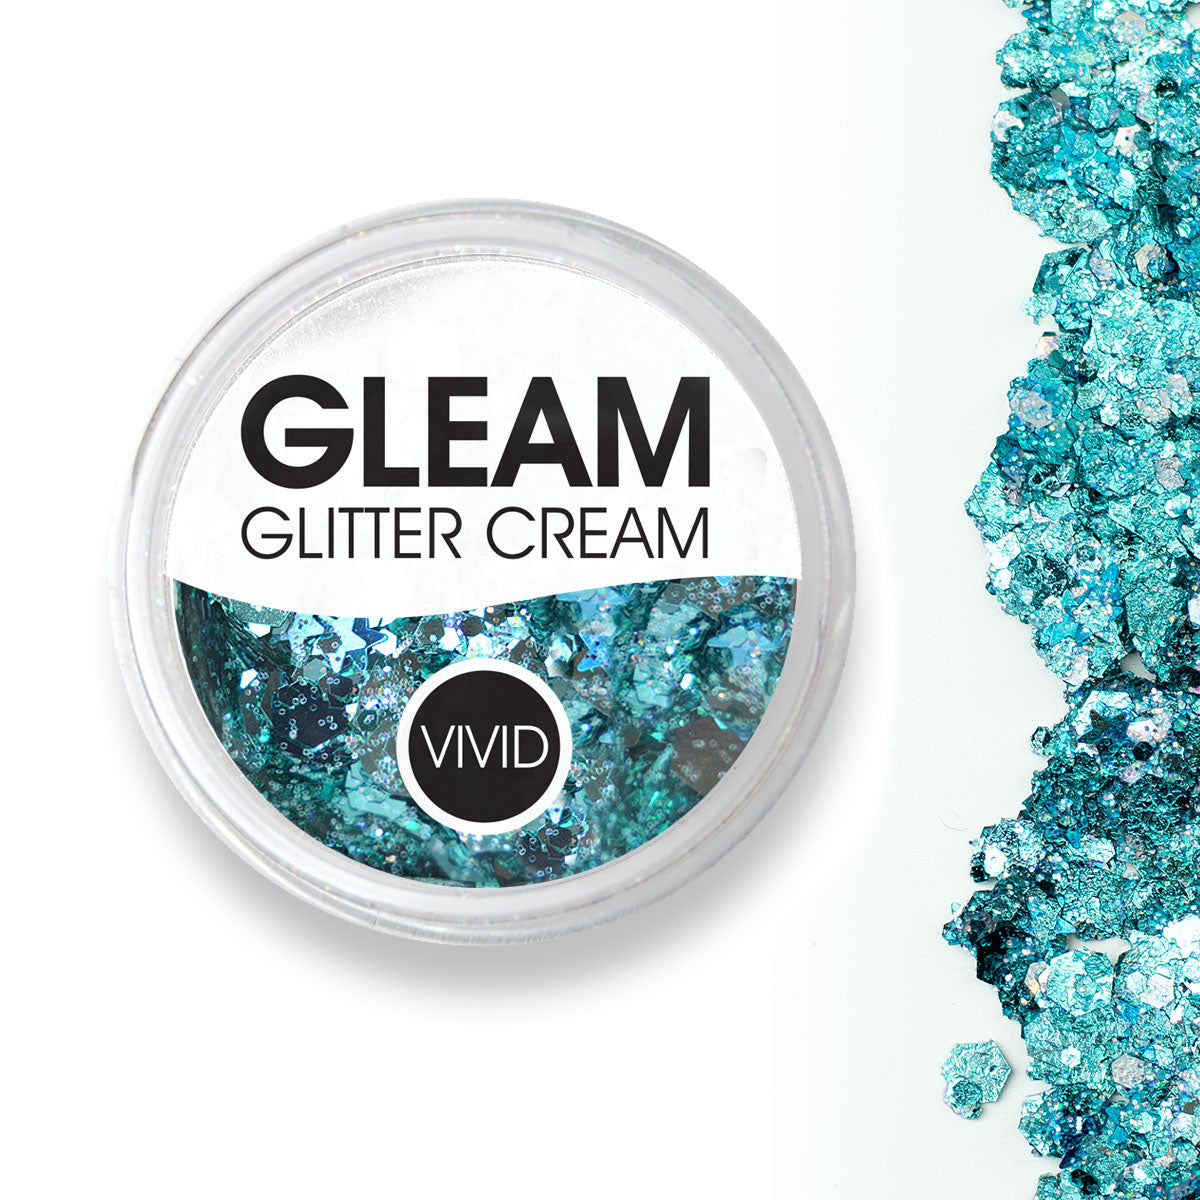 Angelic Ice - Gleam Chunky Glitter Cream